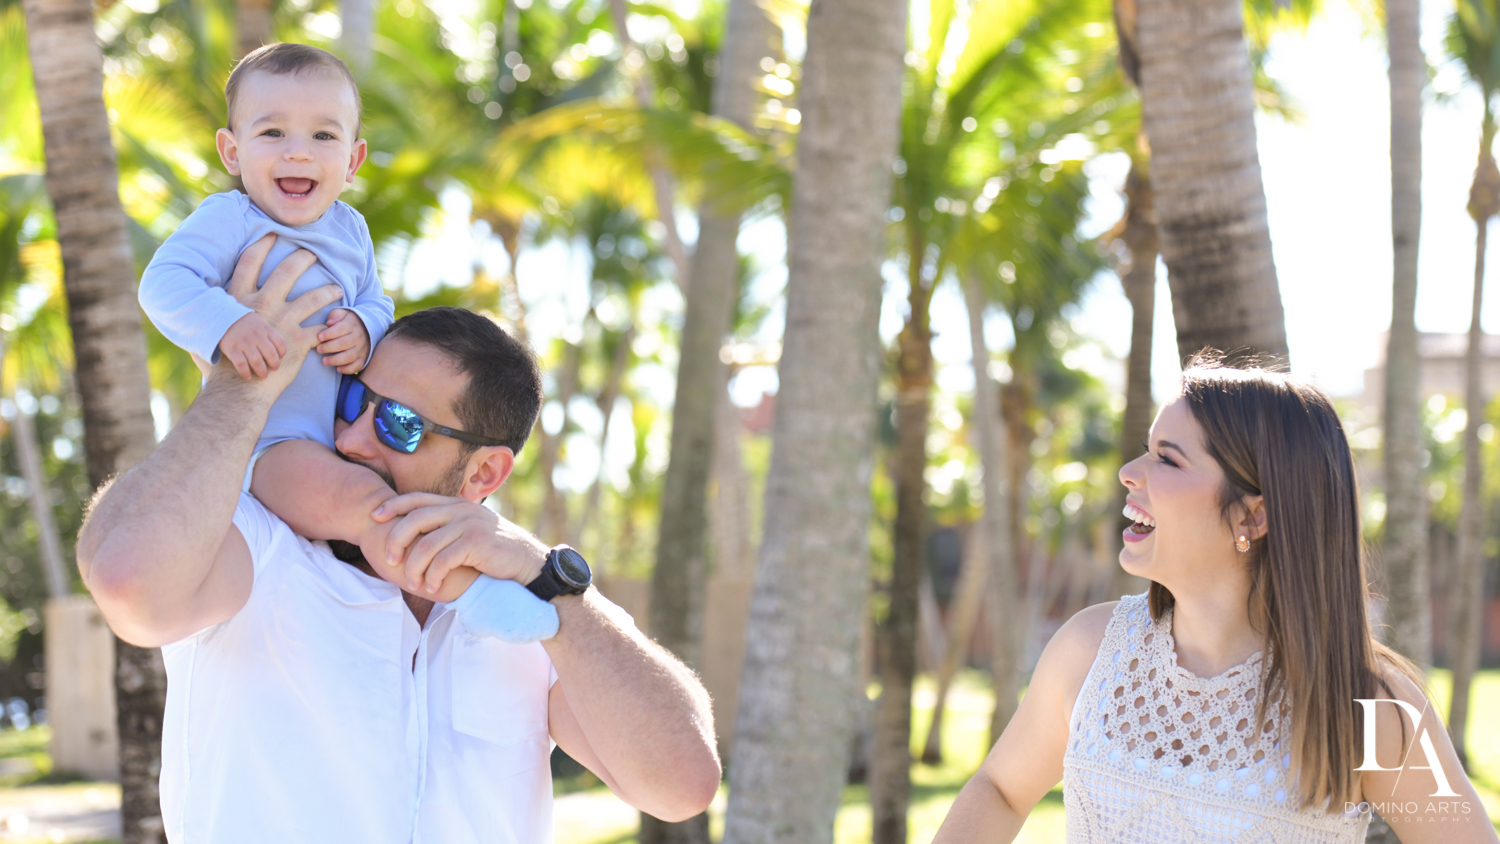 natural family photos at Urban baby Photo Session in Coral Gables by Domino Arts Photography